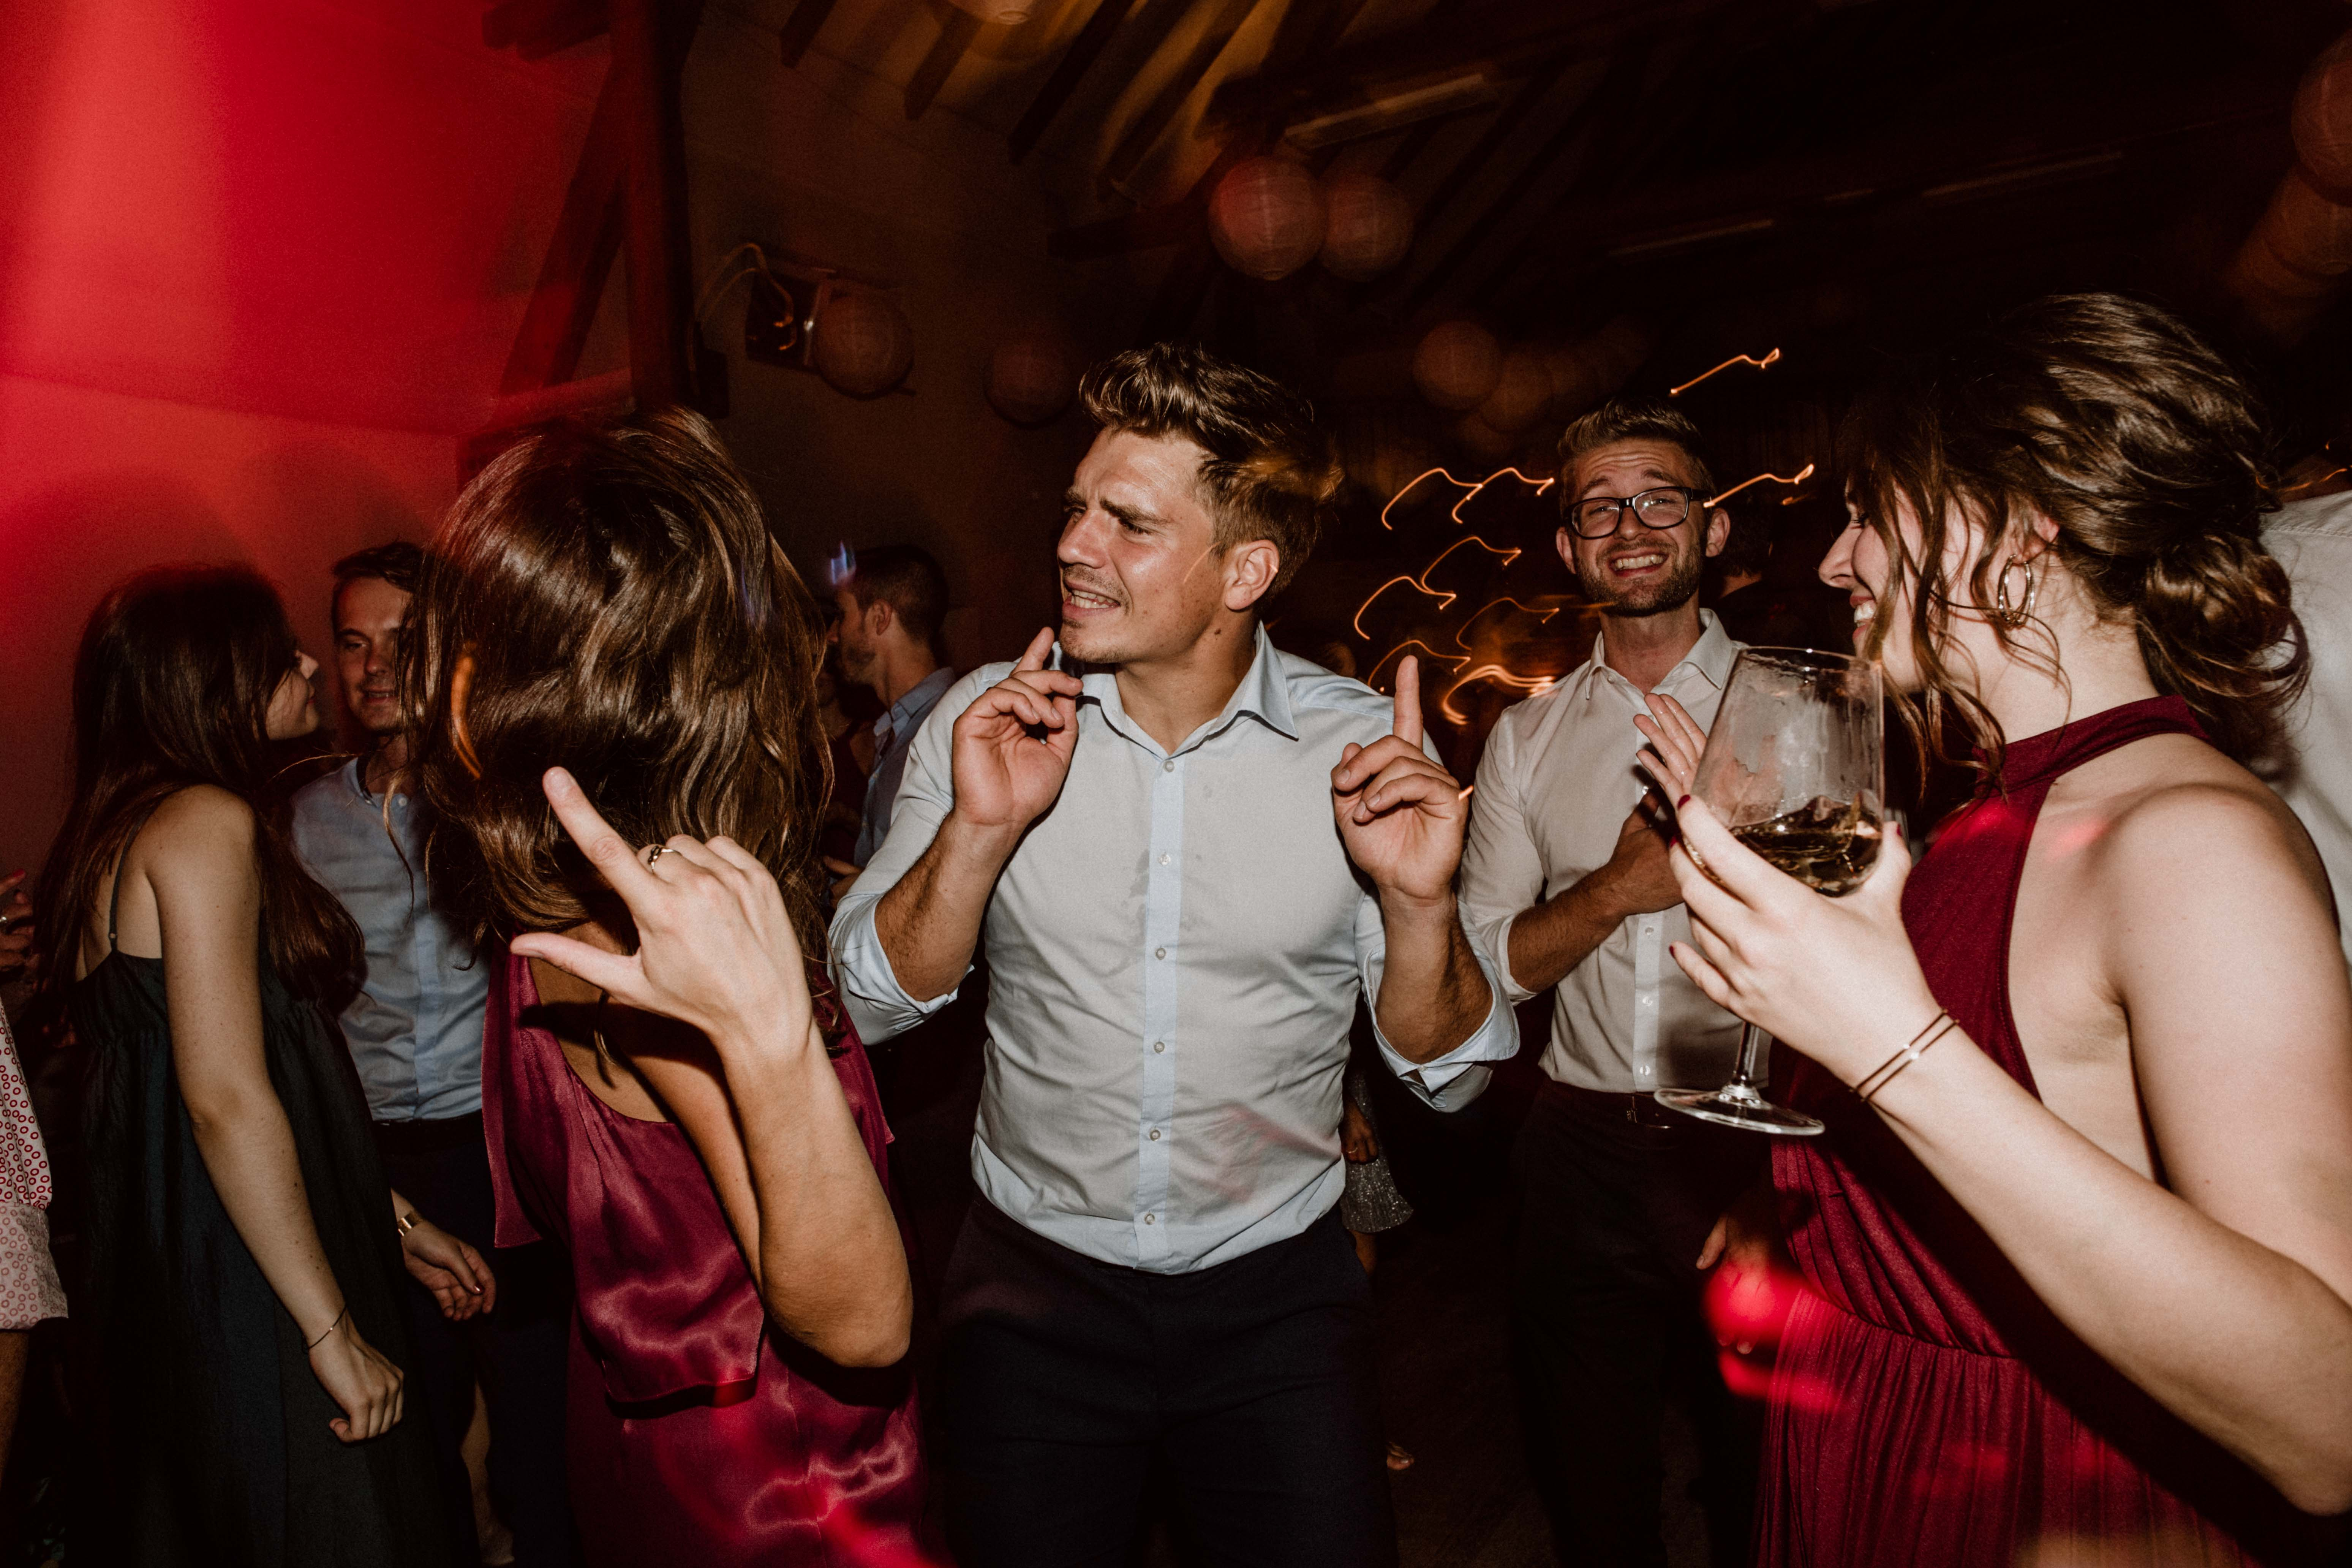 the end partypeople sonja poehlmann photography wedding muenchen bayern